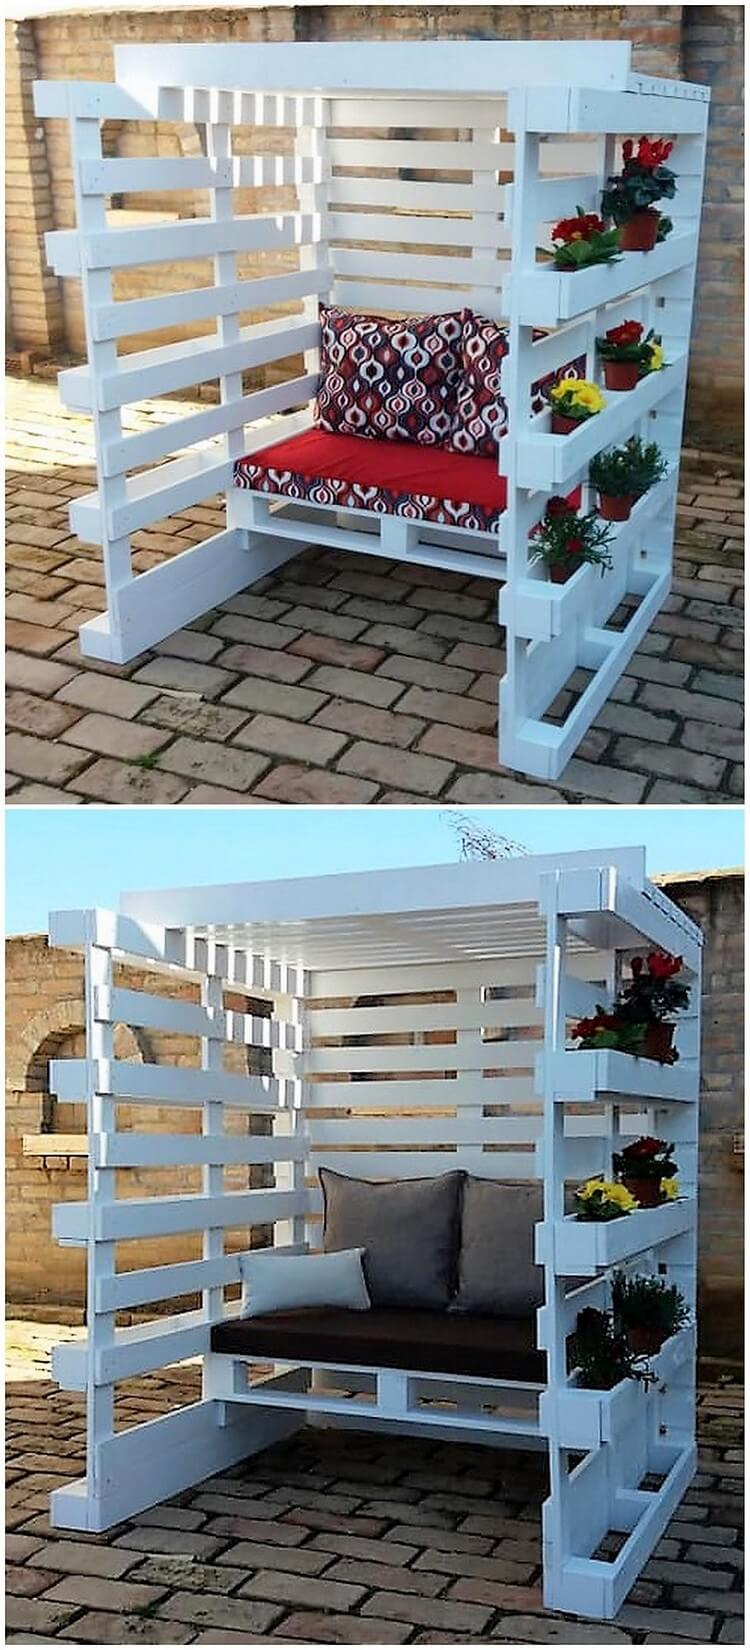 Pallet Seat with Planters